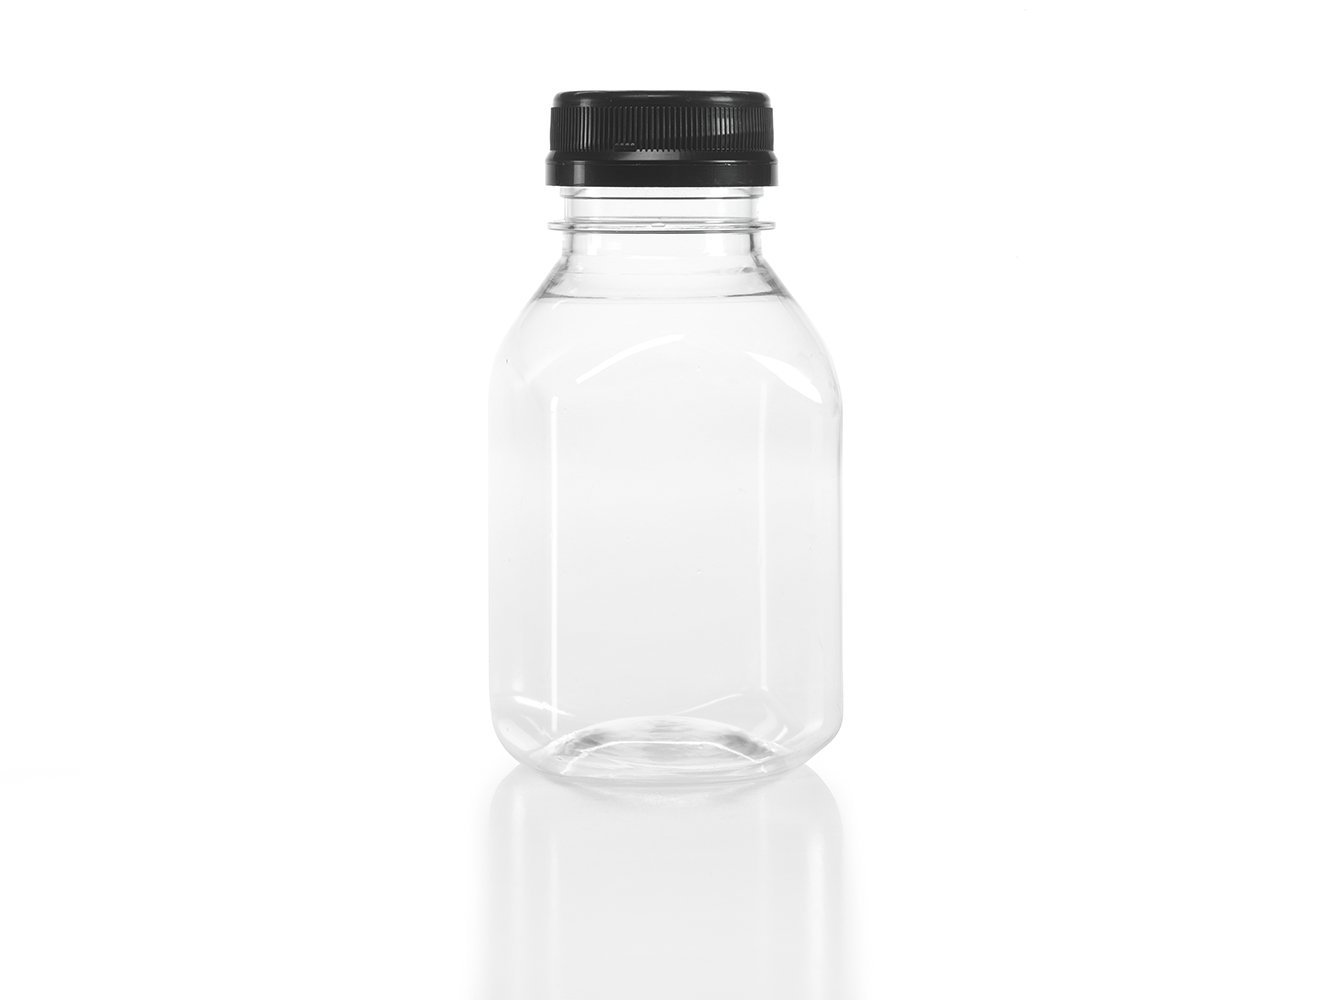 Clear Food Grade Plastic Juice Bottles 8 Oz with Cap 24/pack by Juce Jugz